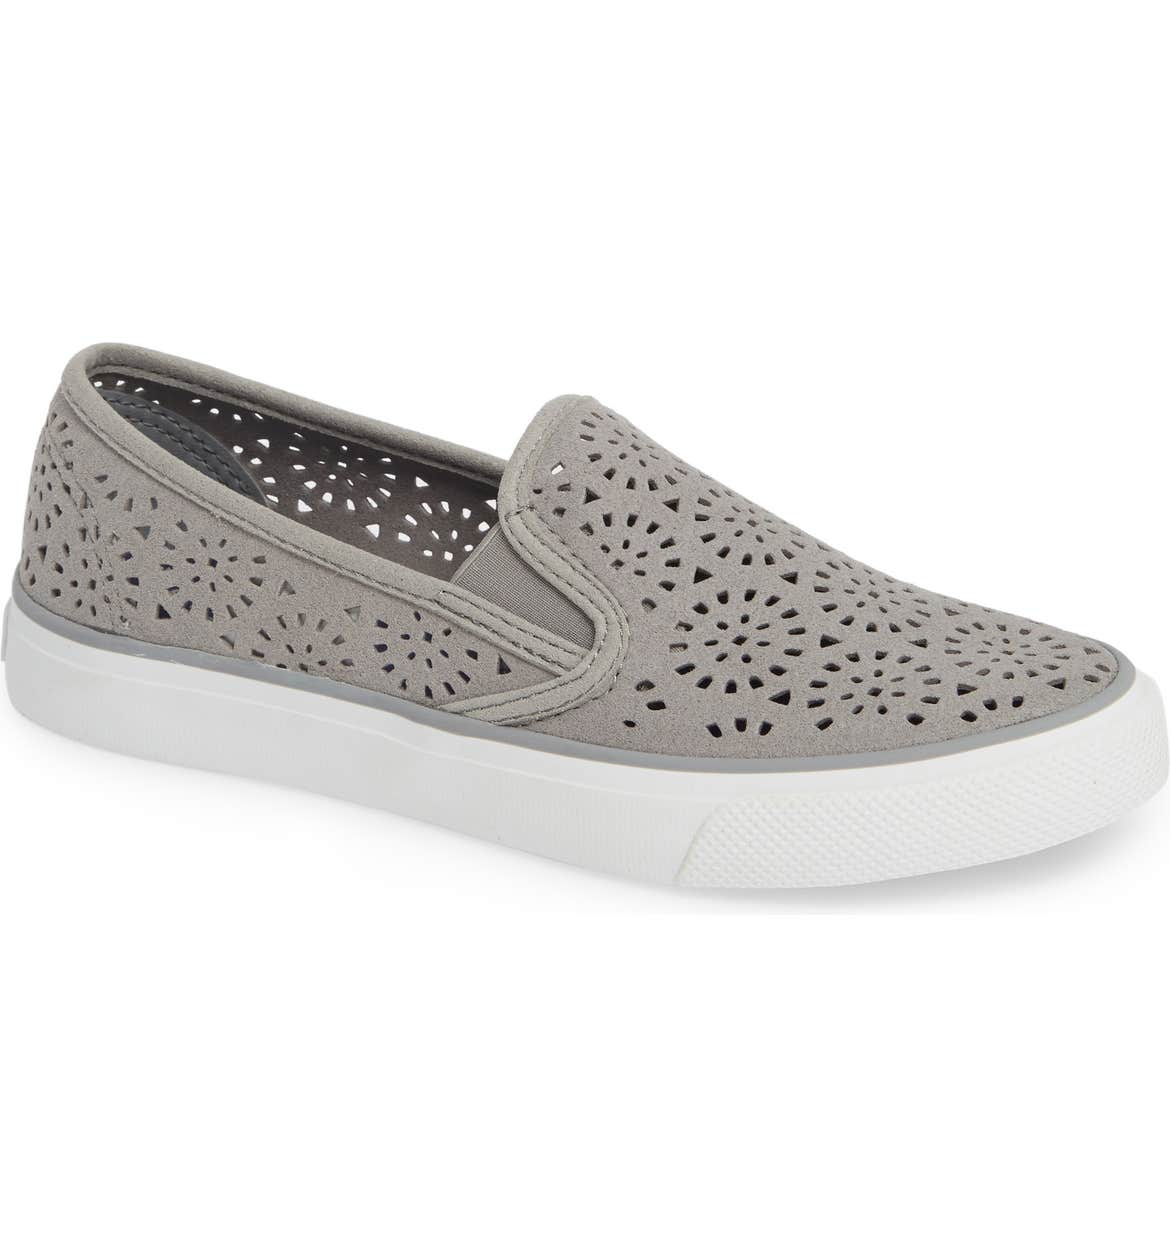 SPERRY Seaside Nautical Perforated Slip-On Sneaker, Main, color, GREY NUBUCK LEATHER